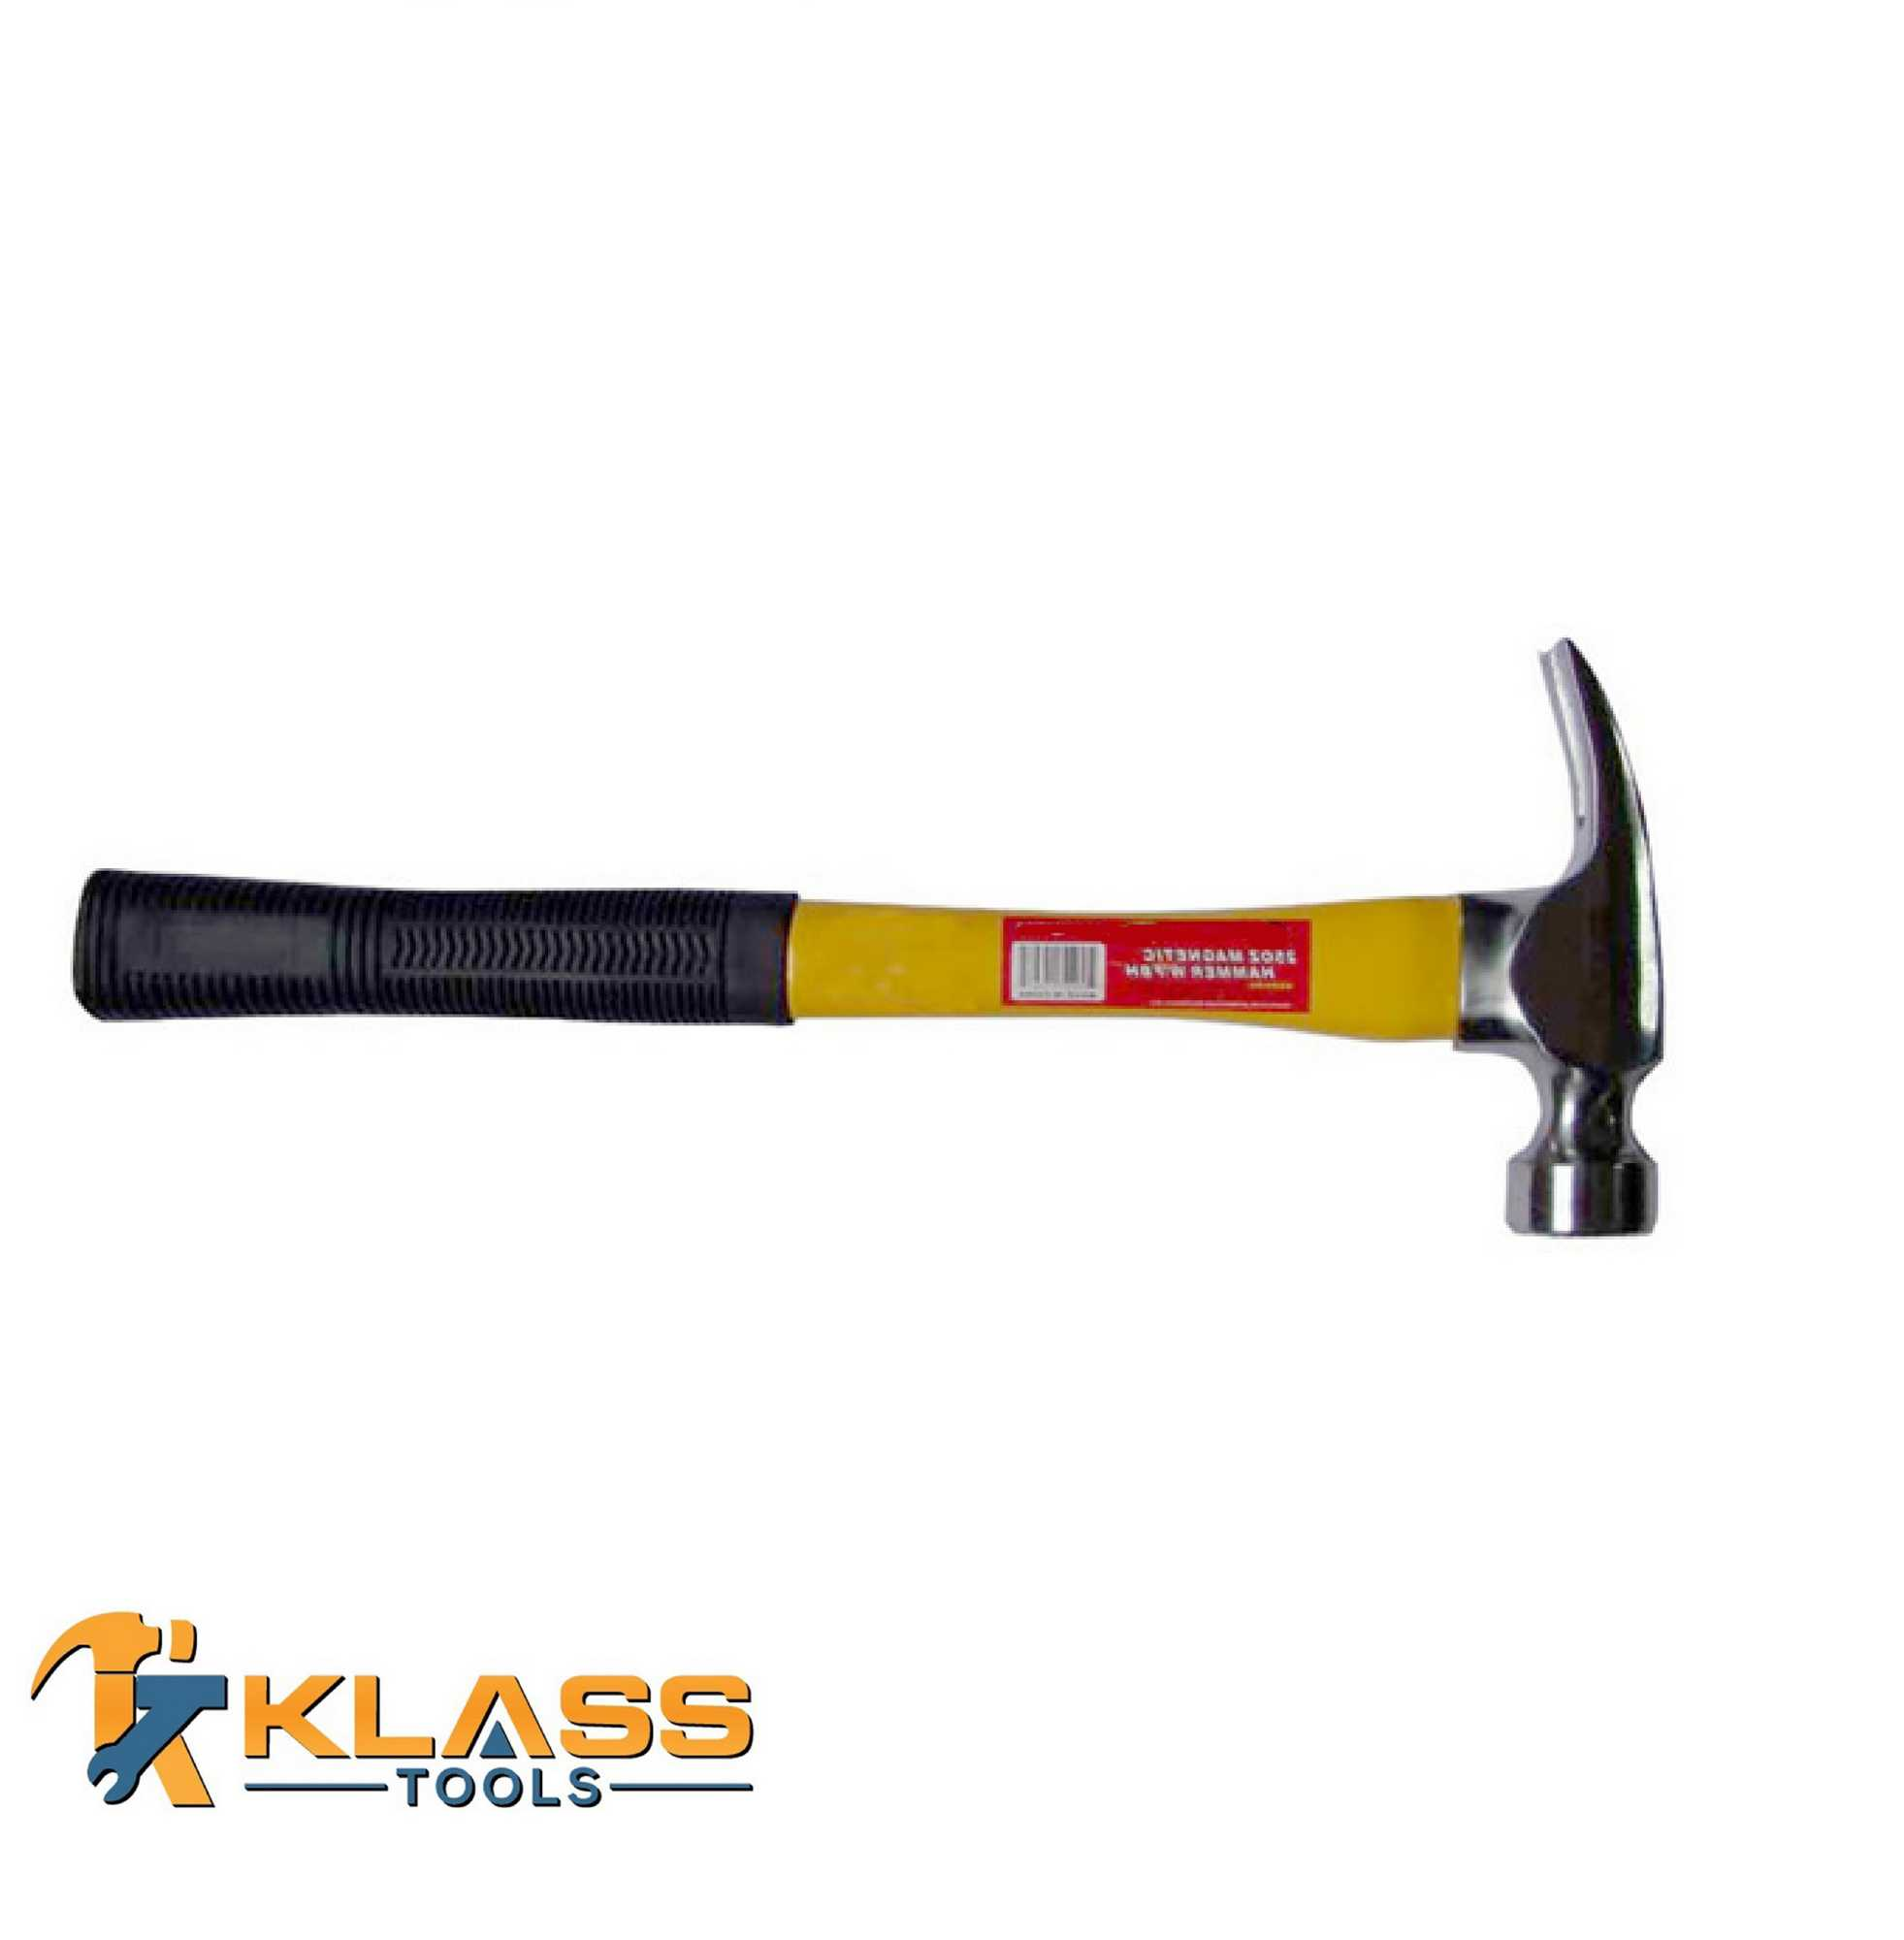 25oz Magnetic Hammer with Fiber Handle